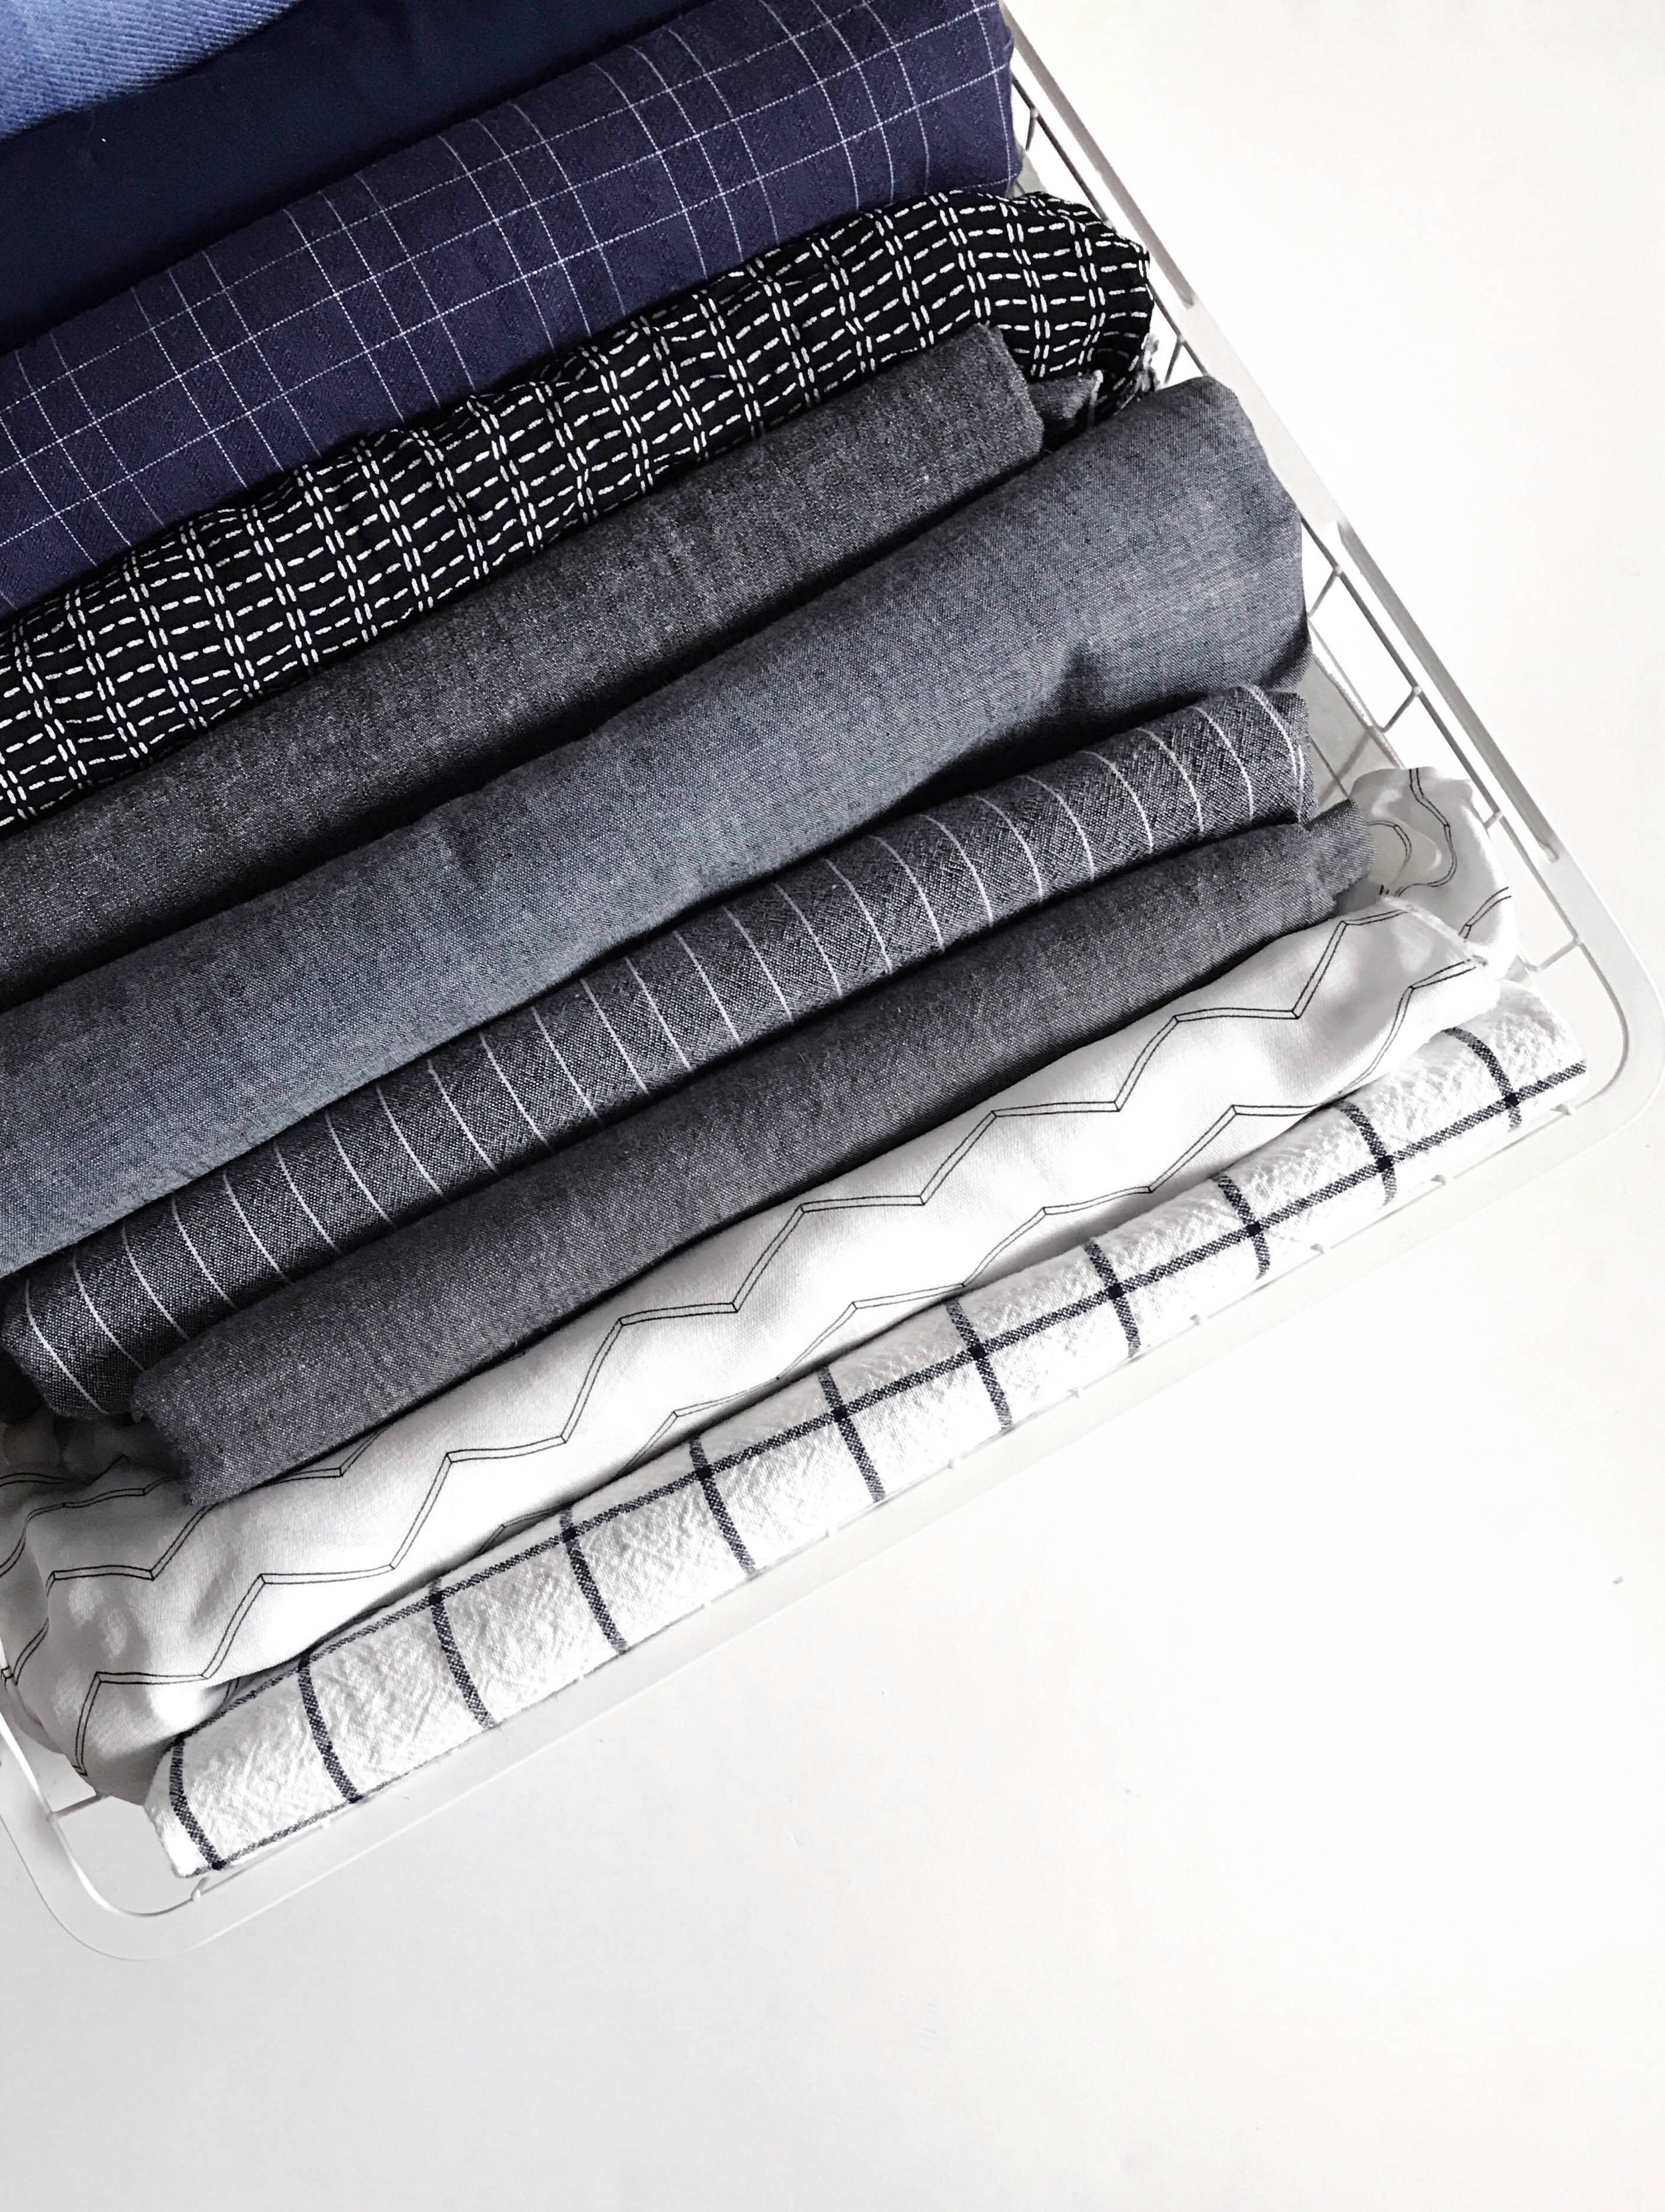 Tips for Organizing Your Fabric Stash by Sew DIY